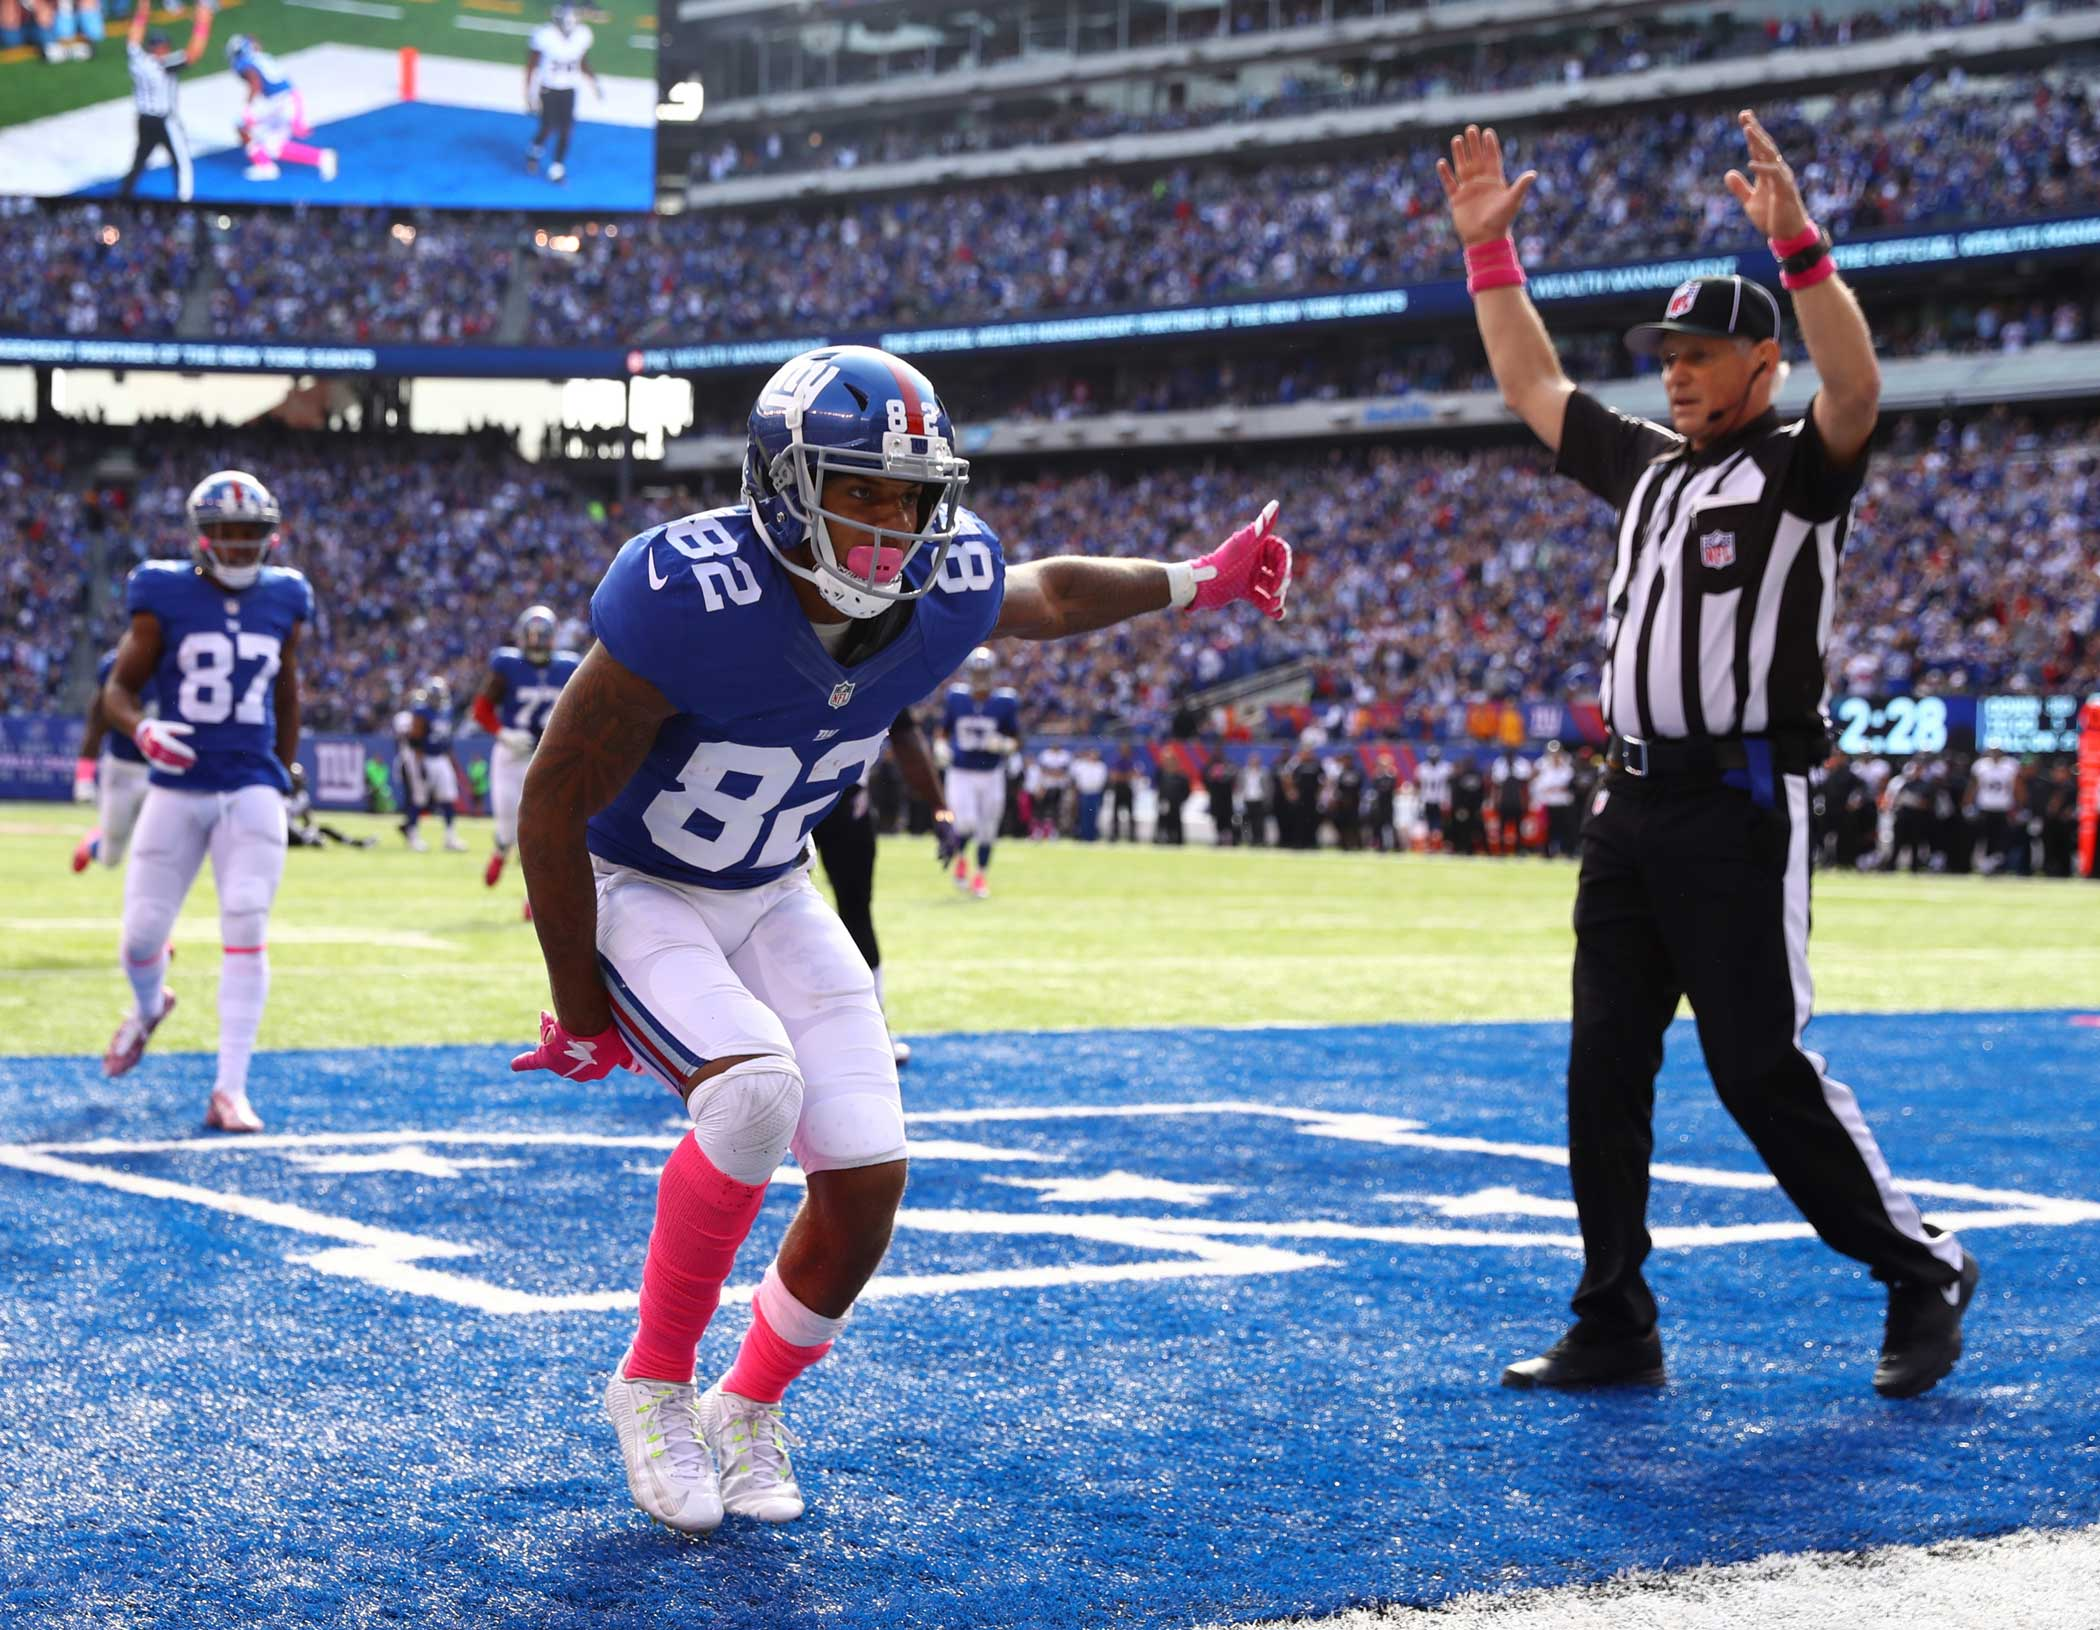 Roger Lewis of the New York Giants celebrates a touchdown against Tavon Young of the Baltimore Ravens in the second quarter during their game at MetLife Stadium on Oct. 16, 2016 in East Rutherford, New Jersey.